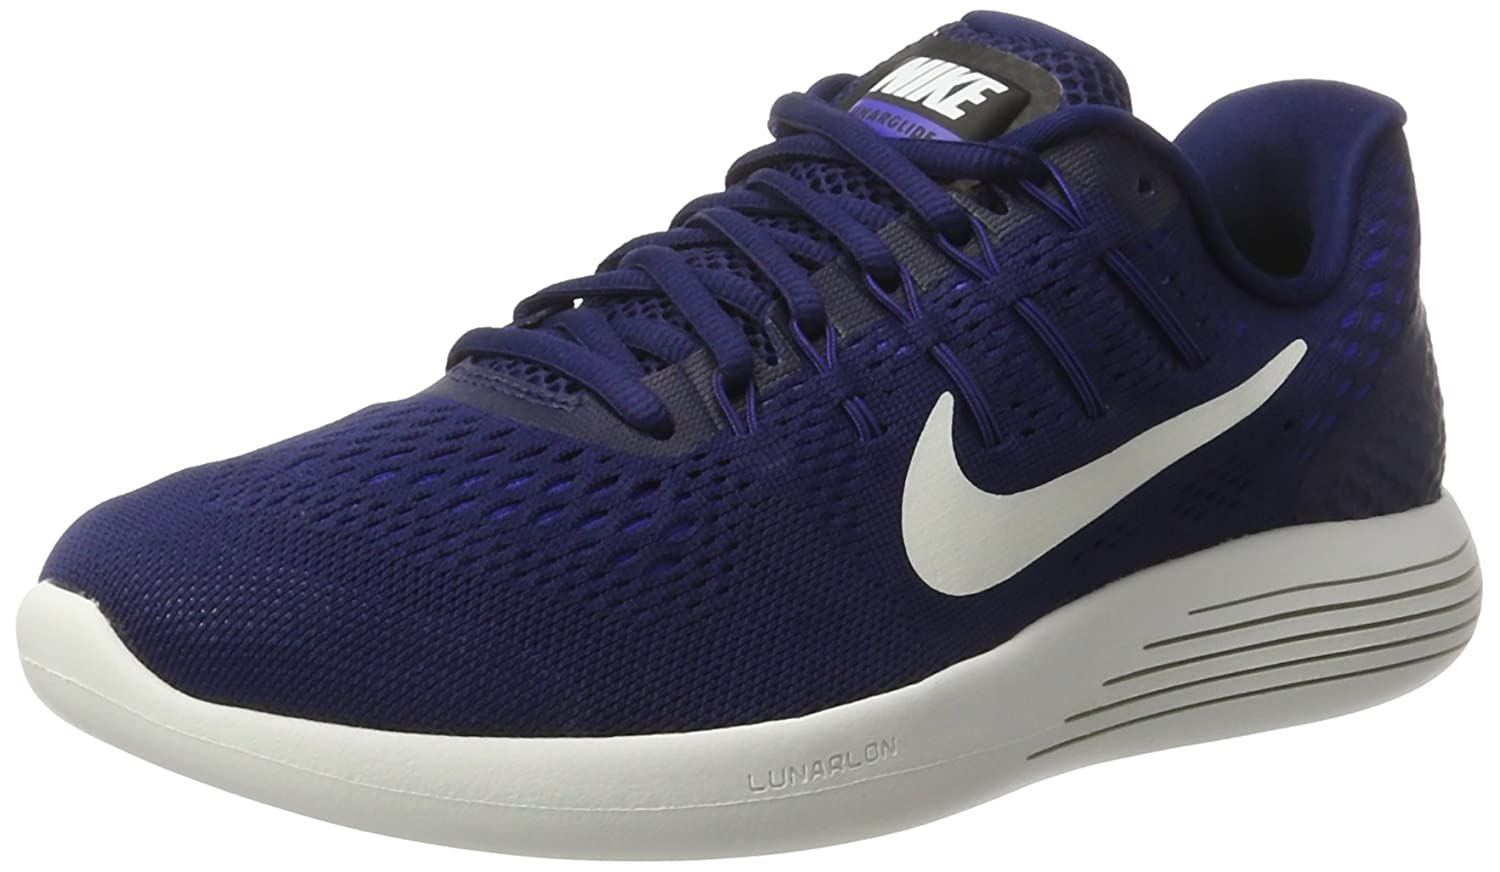 Nike Mens Lunarglide 8, Black / 10 White - Anthracite B01H2Q7O1M 10 / D(M) US|Binary Blue/Summit White/Black 5db399